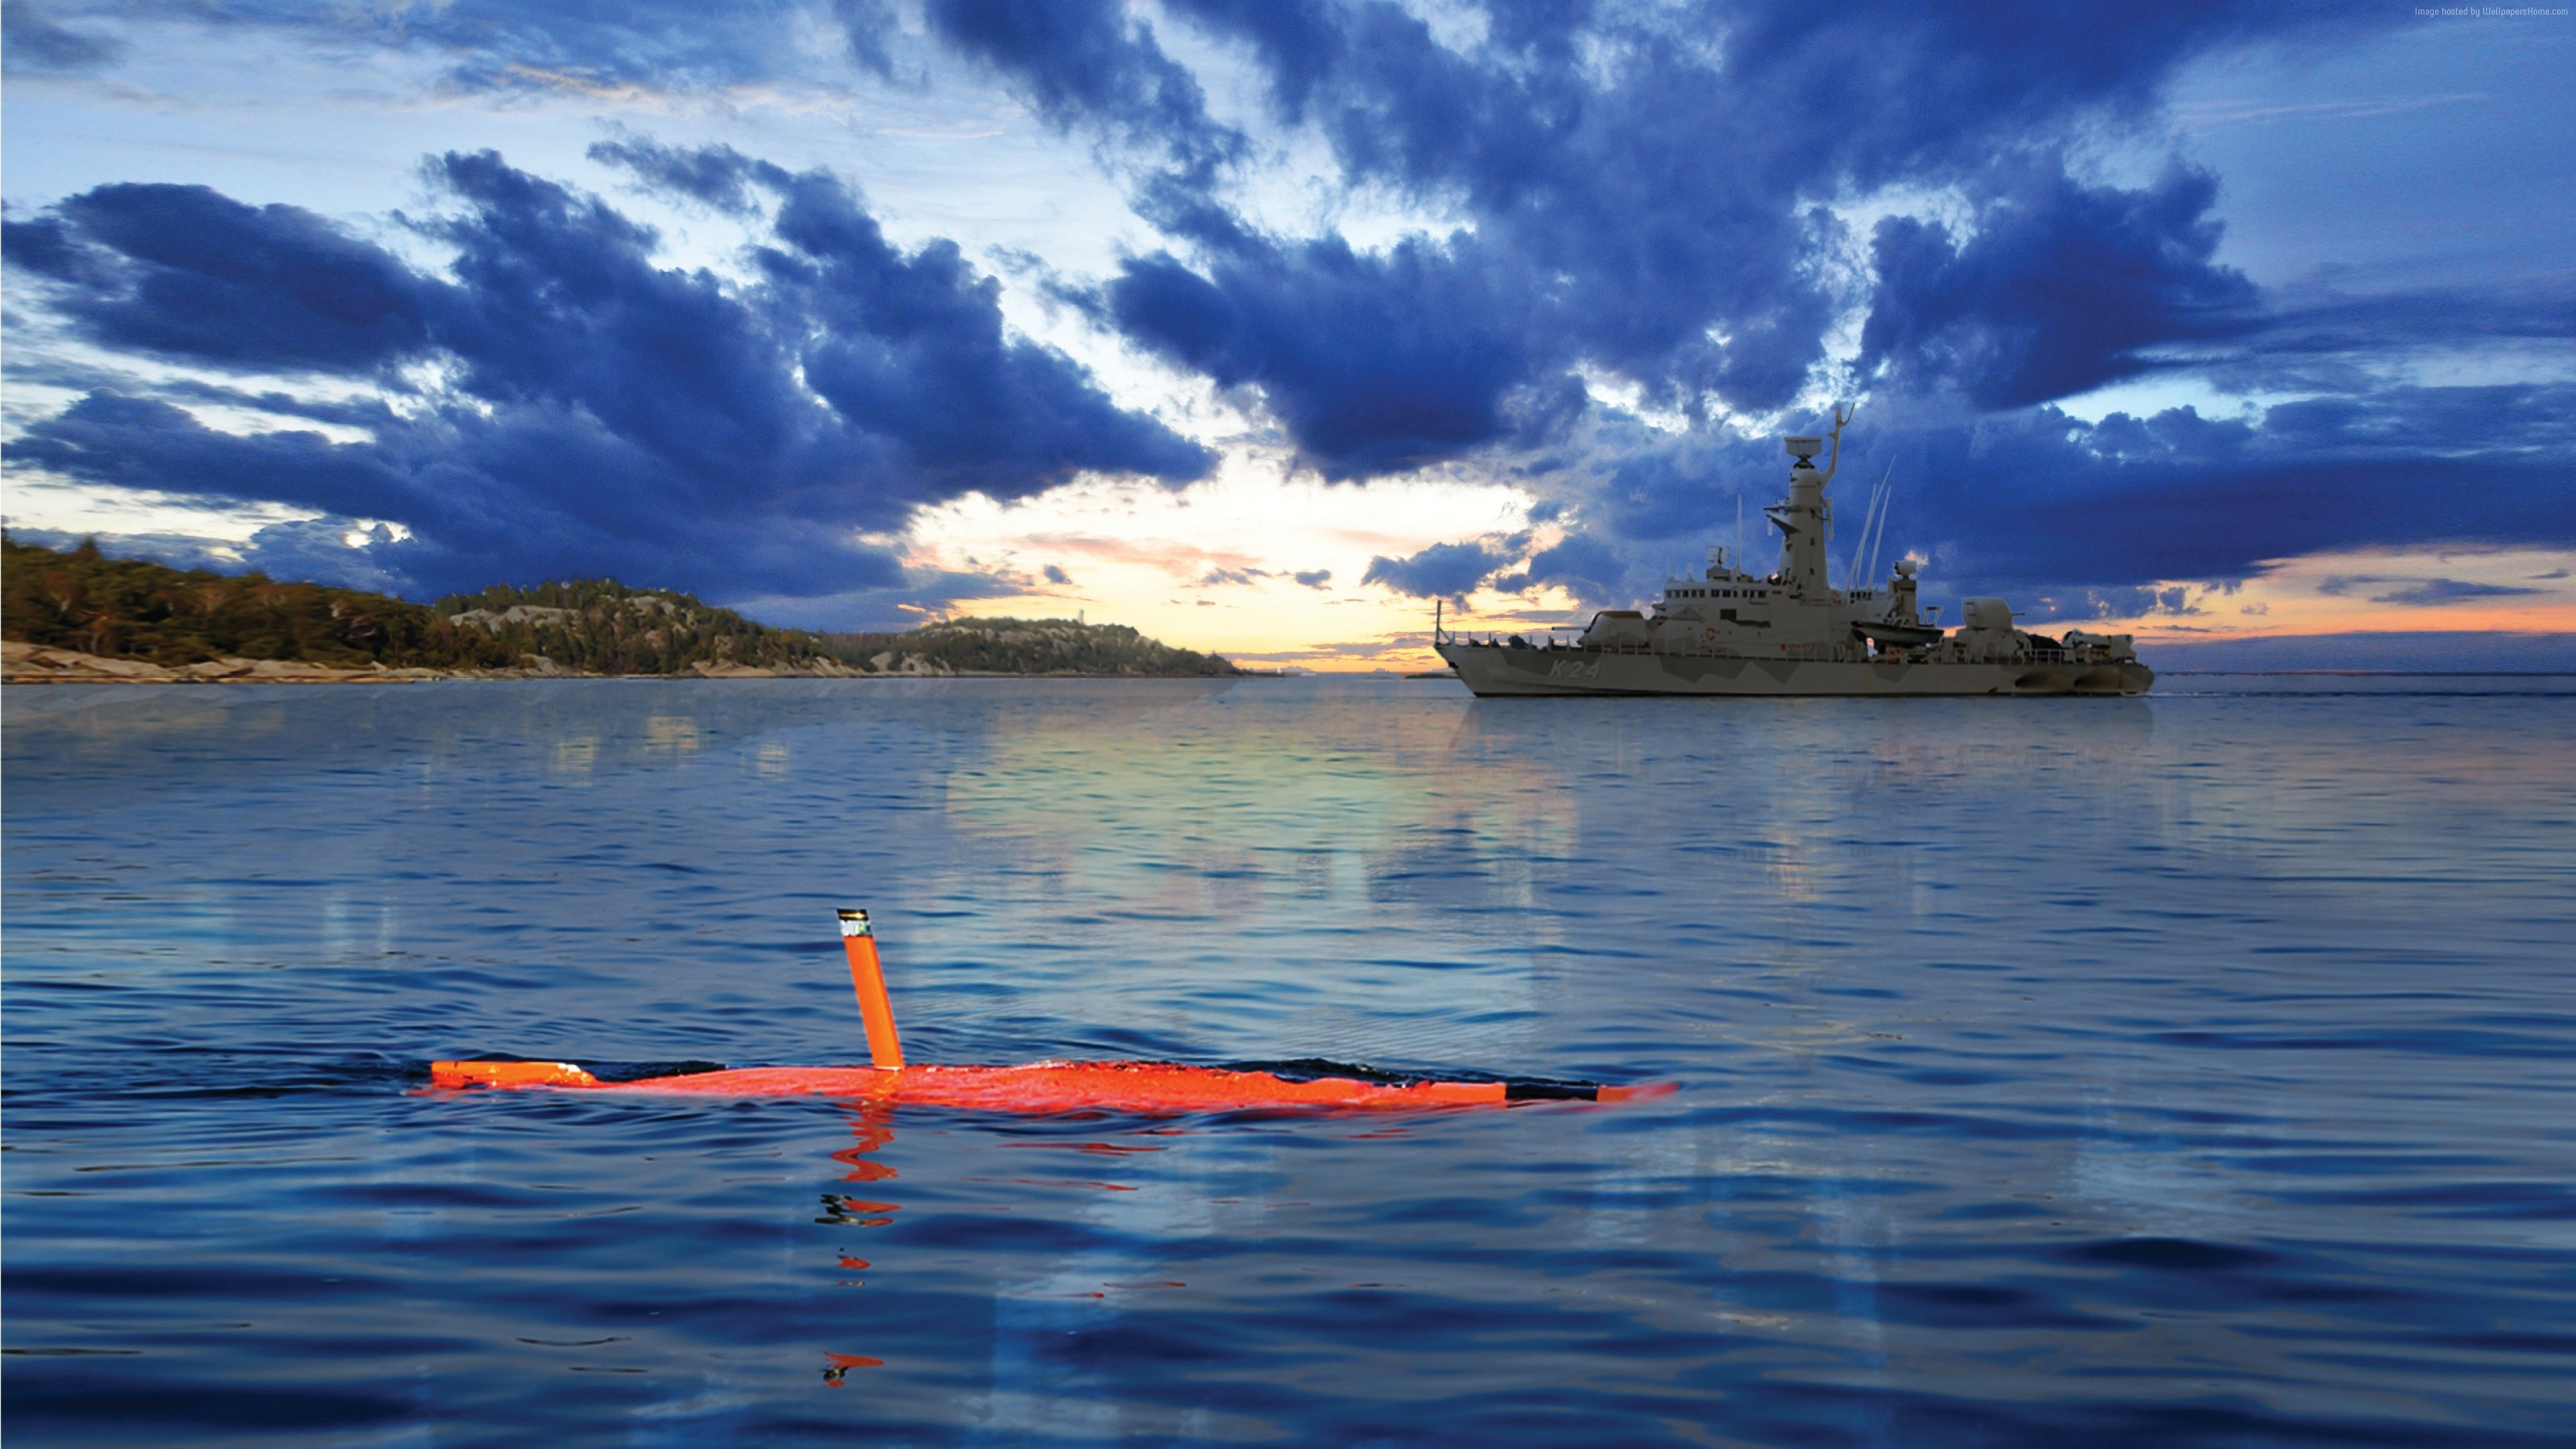 Wallpaper Saab AUV62-AT, drone, submarine, Unmanned Warrior 2016, Swedish Navy, Swedish Army, Military